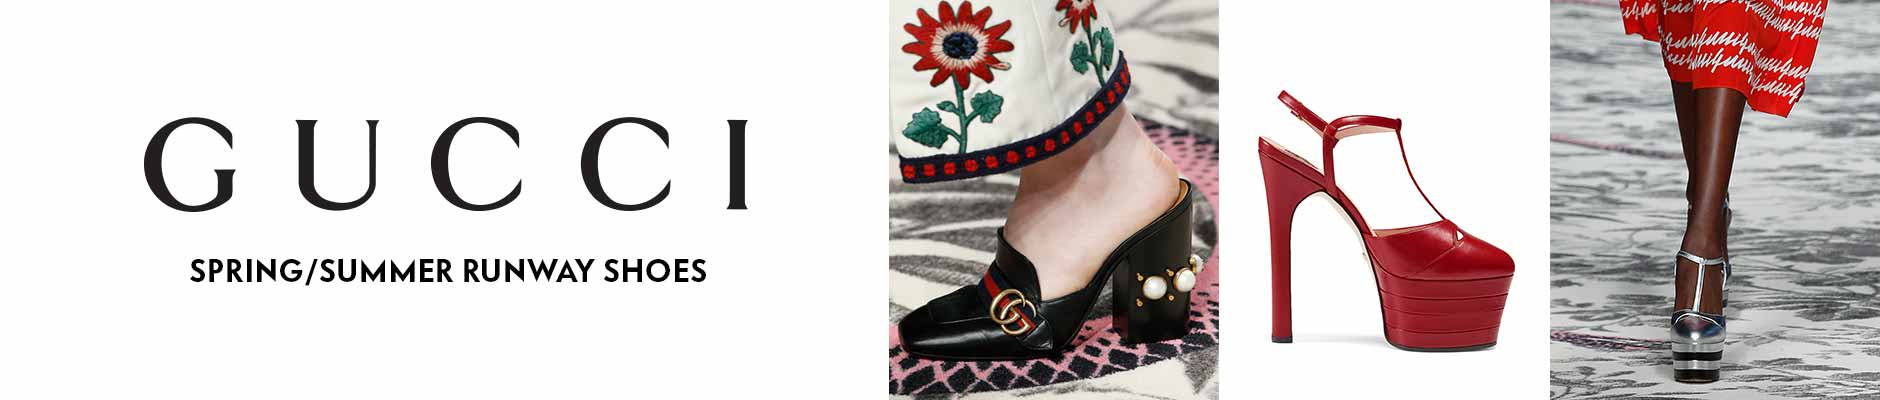 Gucci - Spring/Summer Runway Shoes